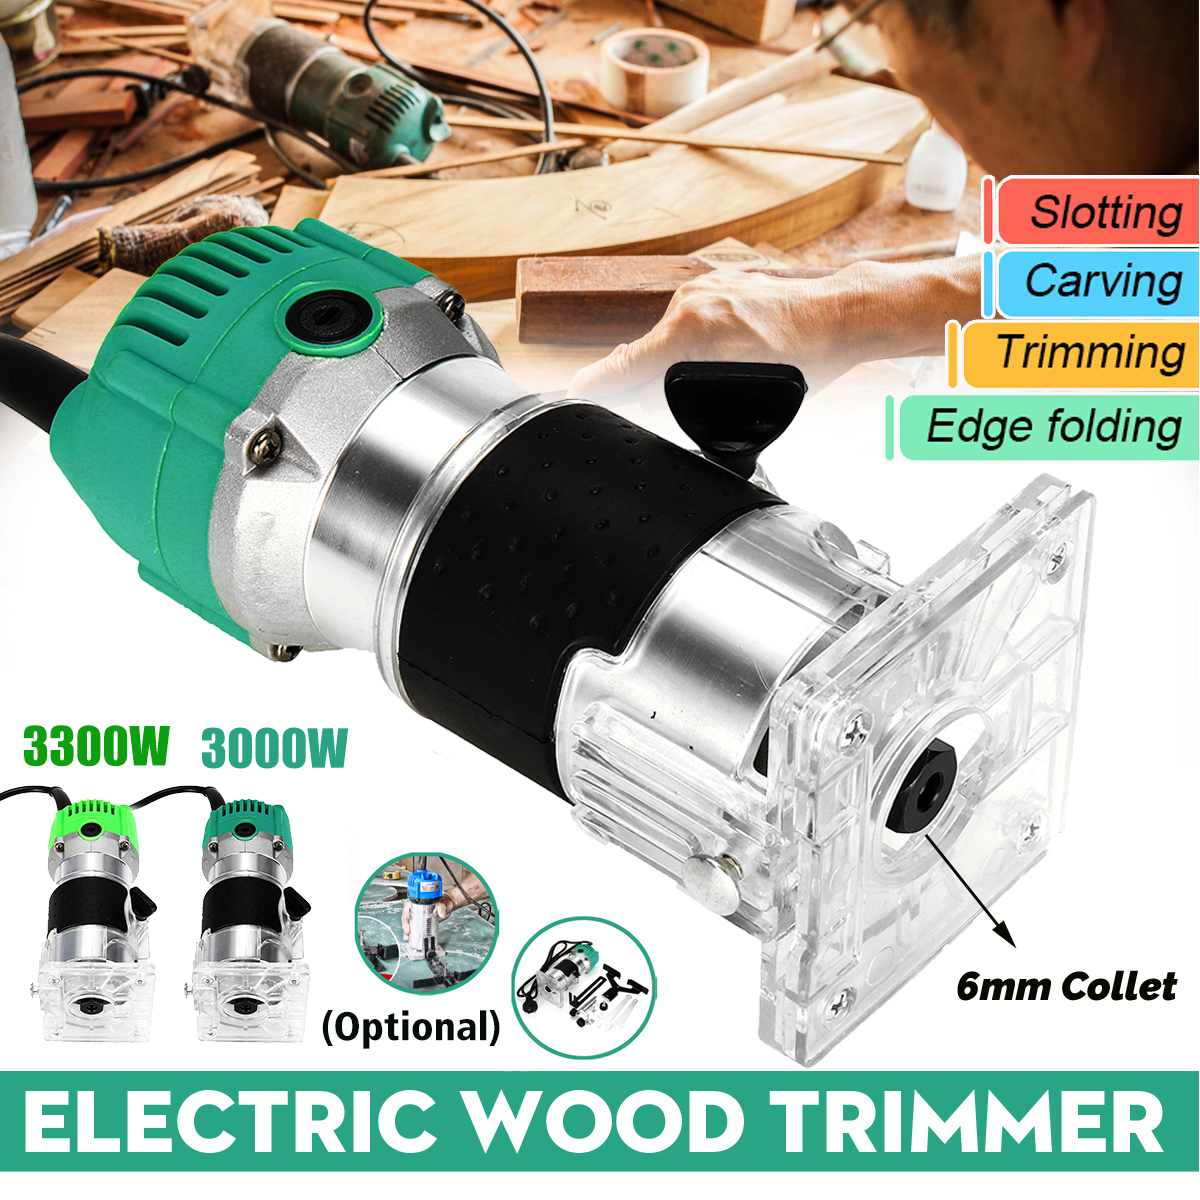 3000W/3300W Wood Electric Hand Trimmer 30000rpm Woodworking Milling Engraving Slotting Trimming Hand Carving Machine Wood Router